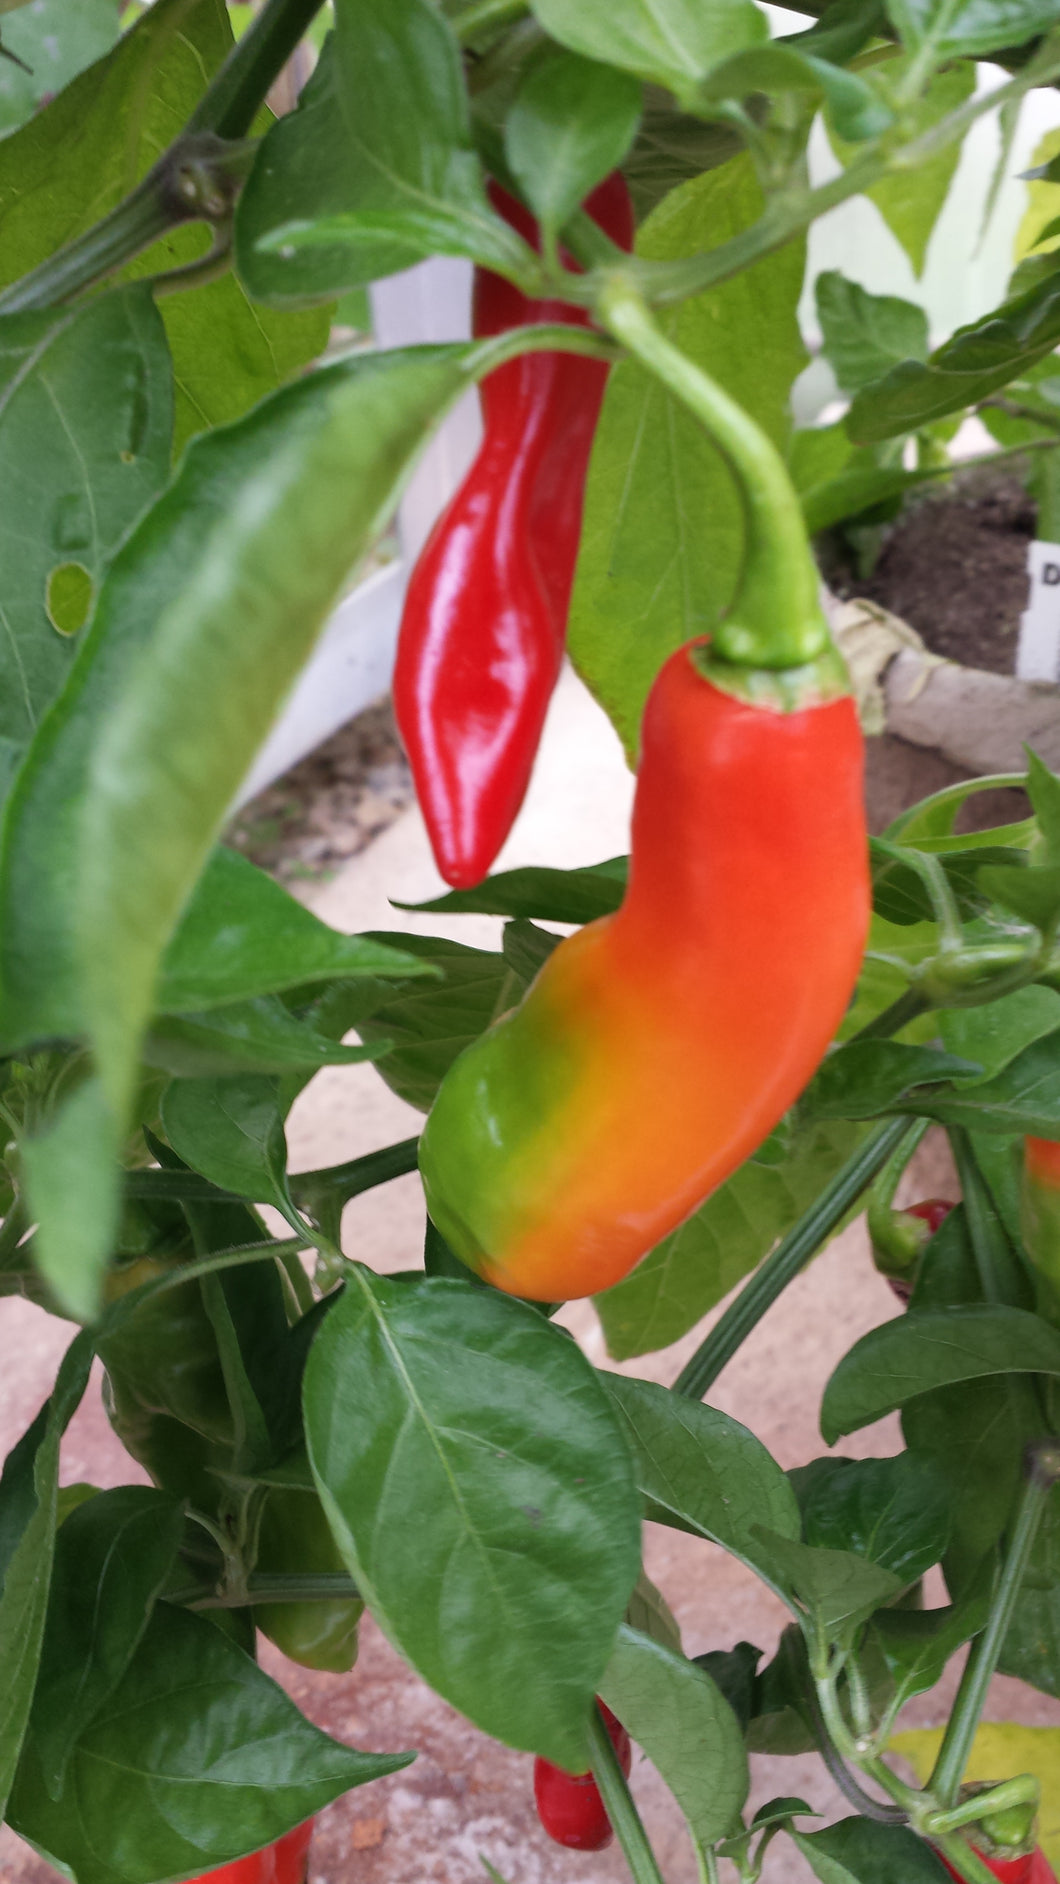 West Indian Pimento Pepper